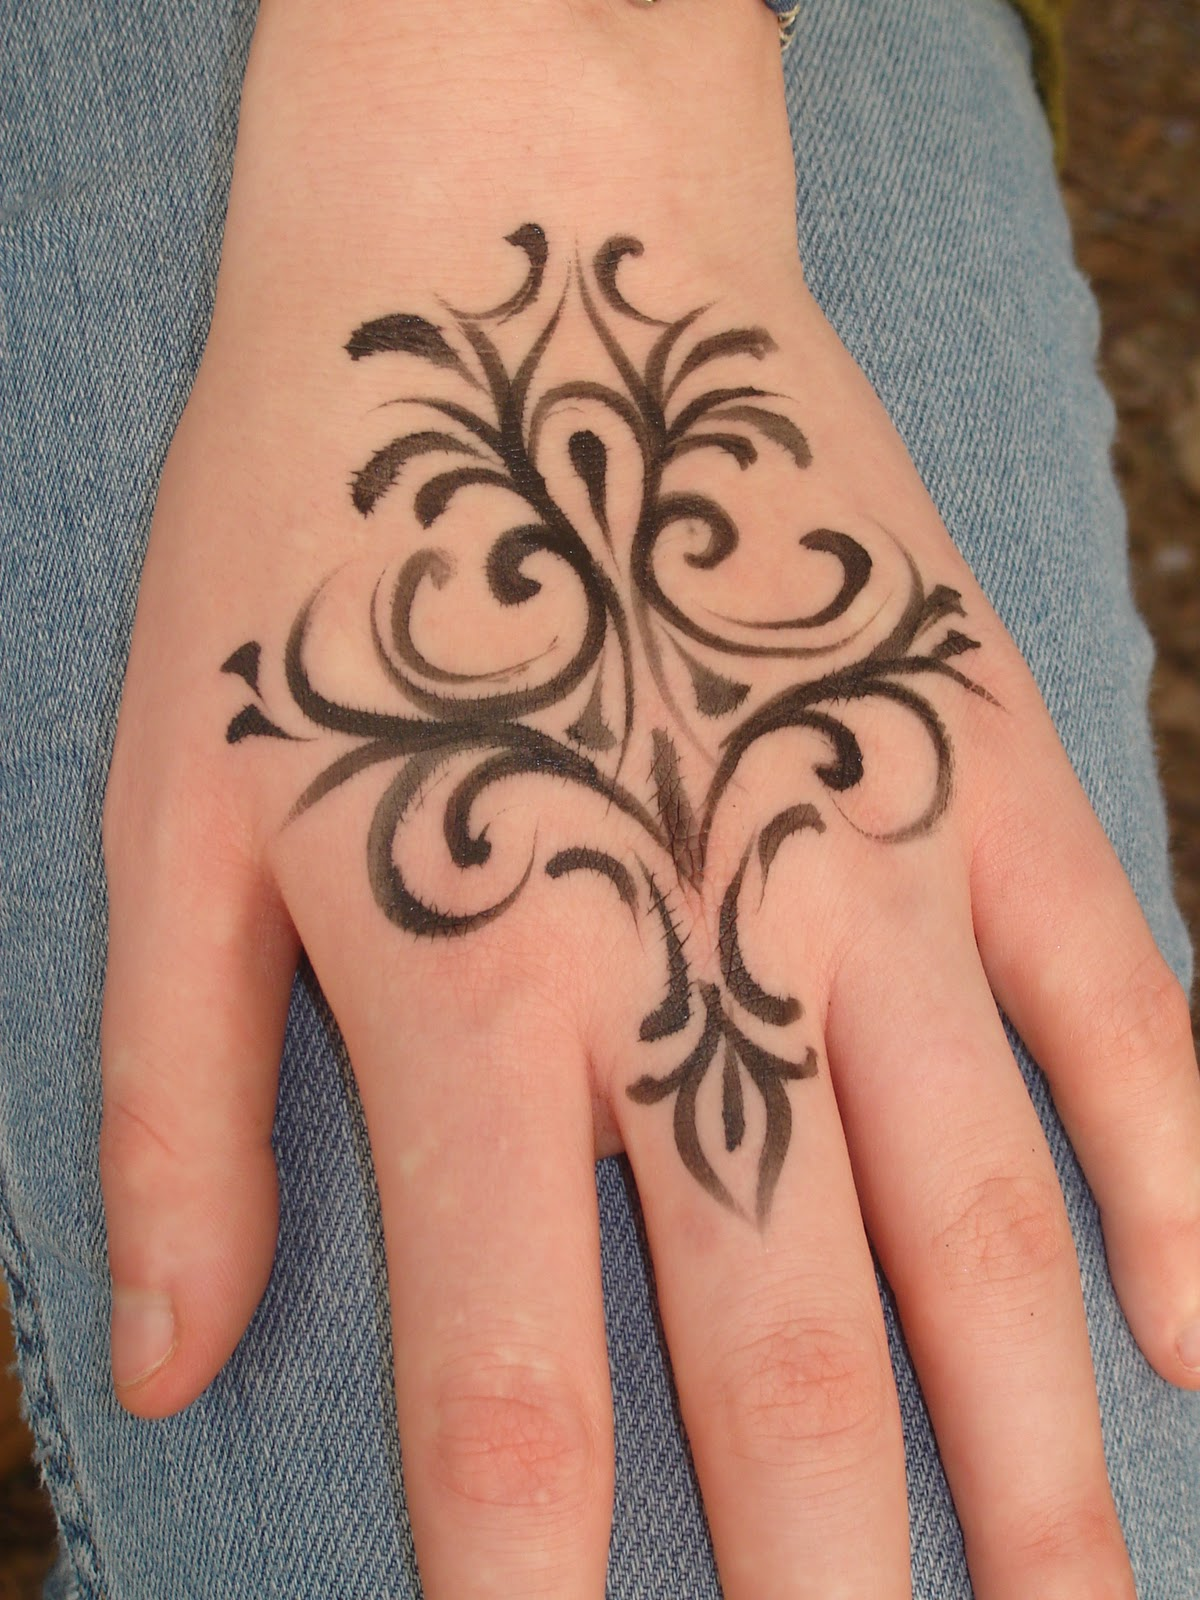 Simple Henna Tattoo Designs For Wrist: Henna Tatoo Designs